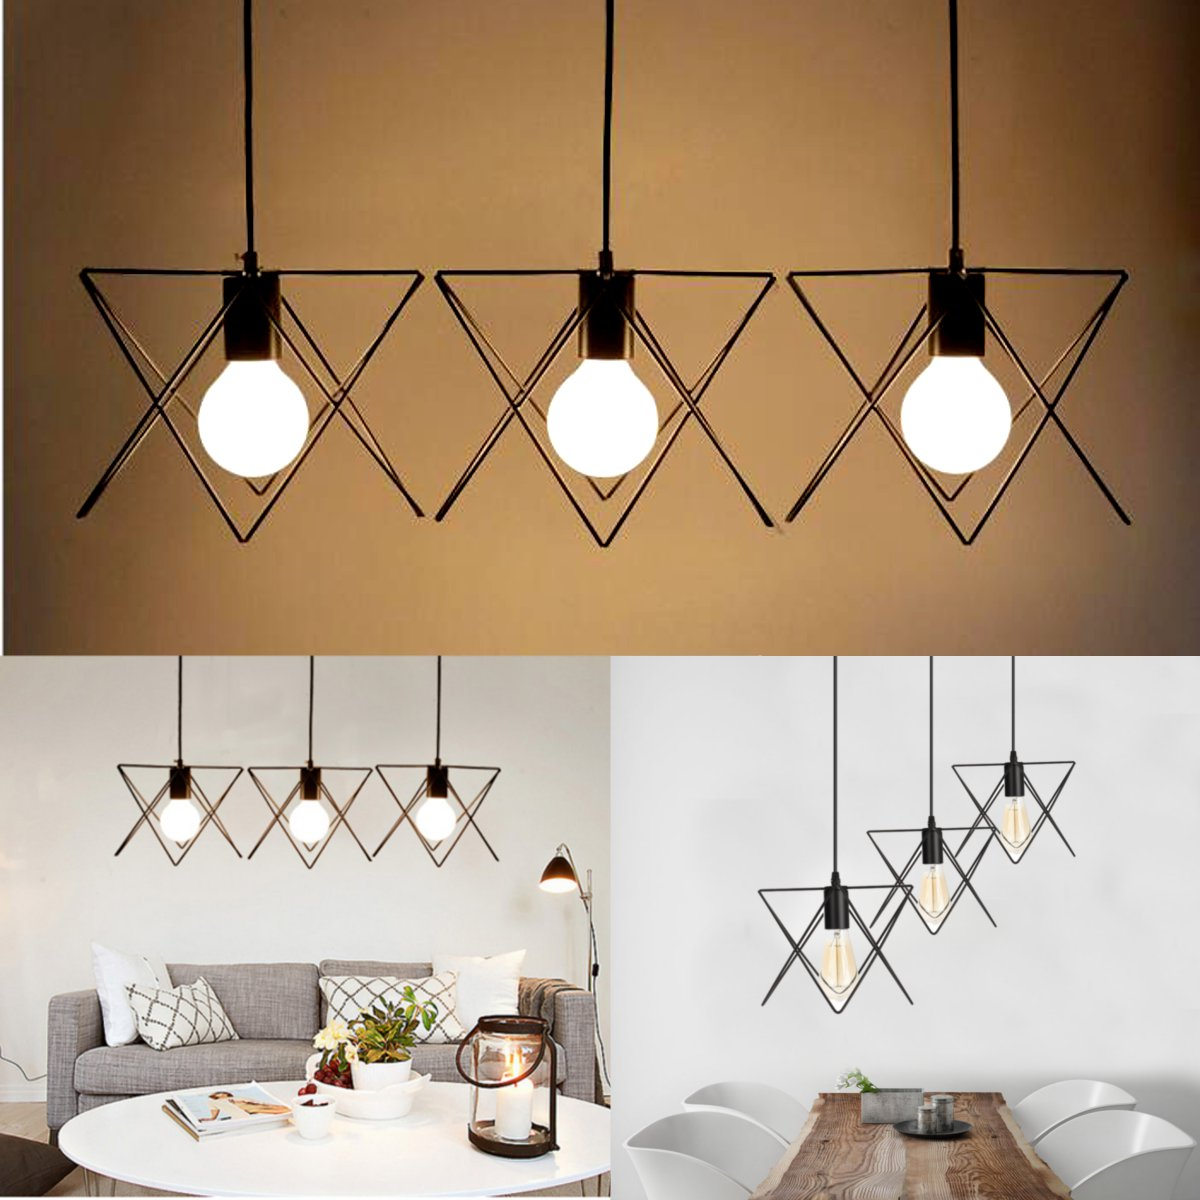 ktv shade led lamp pendant lights bart vintage star art metal lighting deco cube hanging for fixture product lampshade cage light